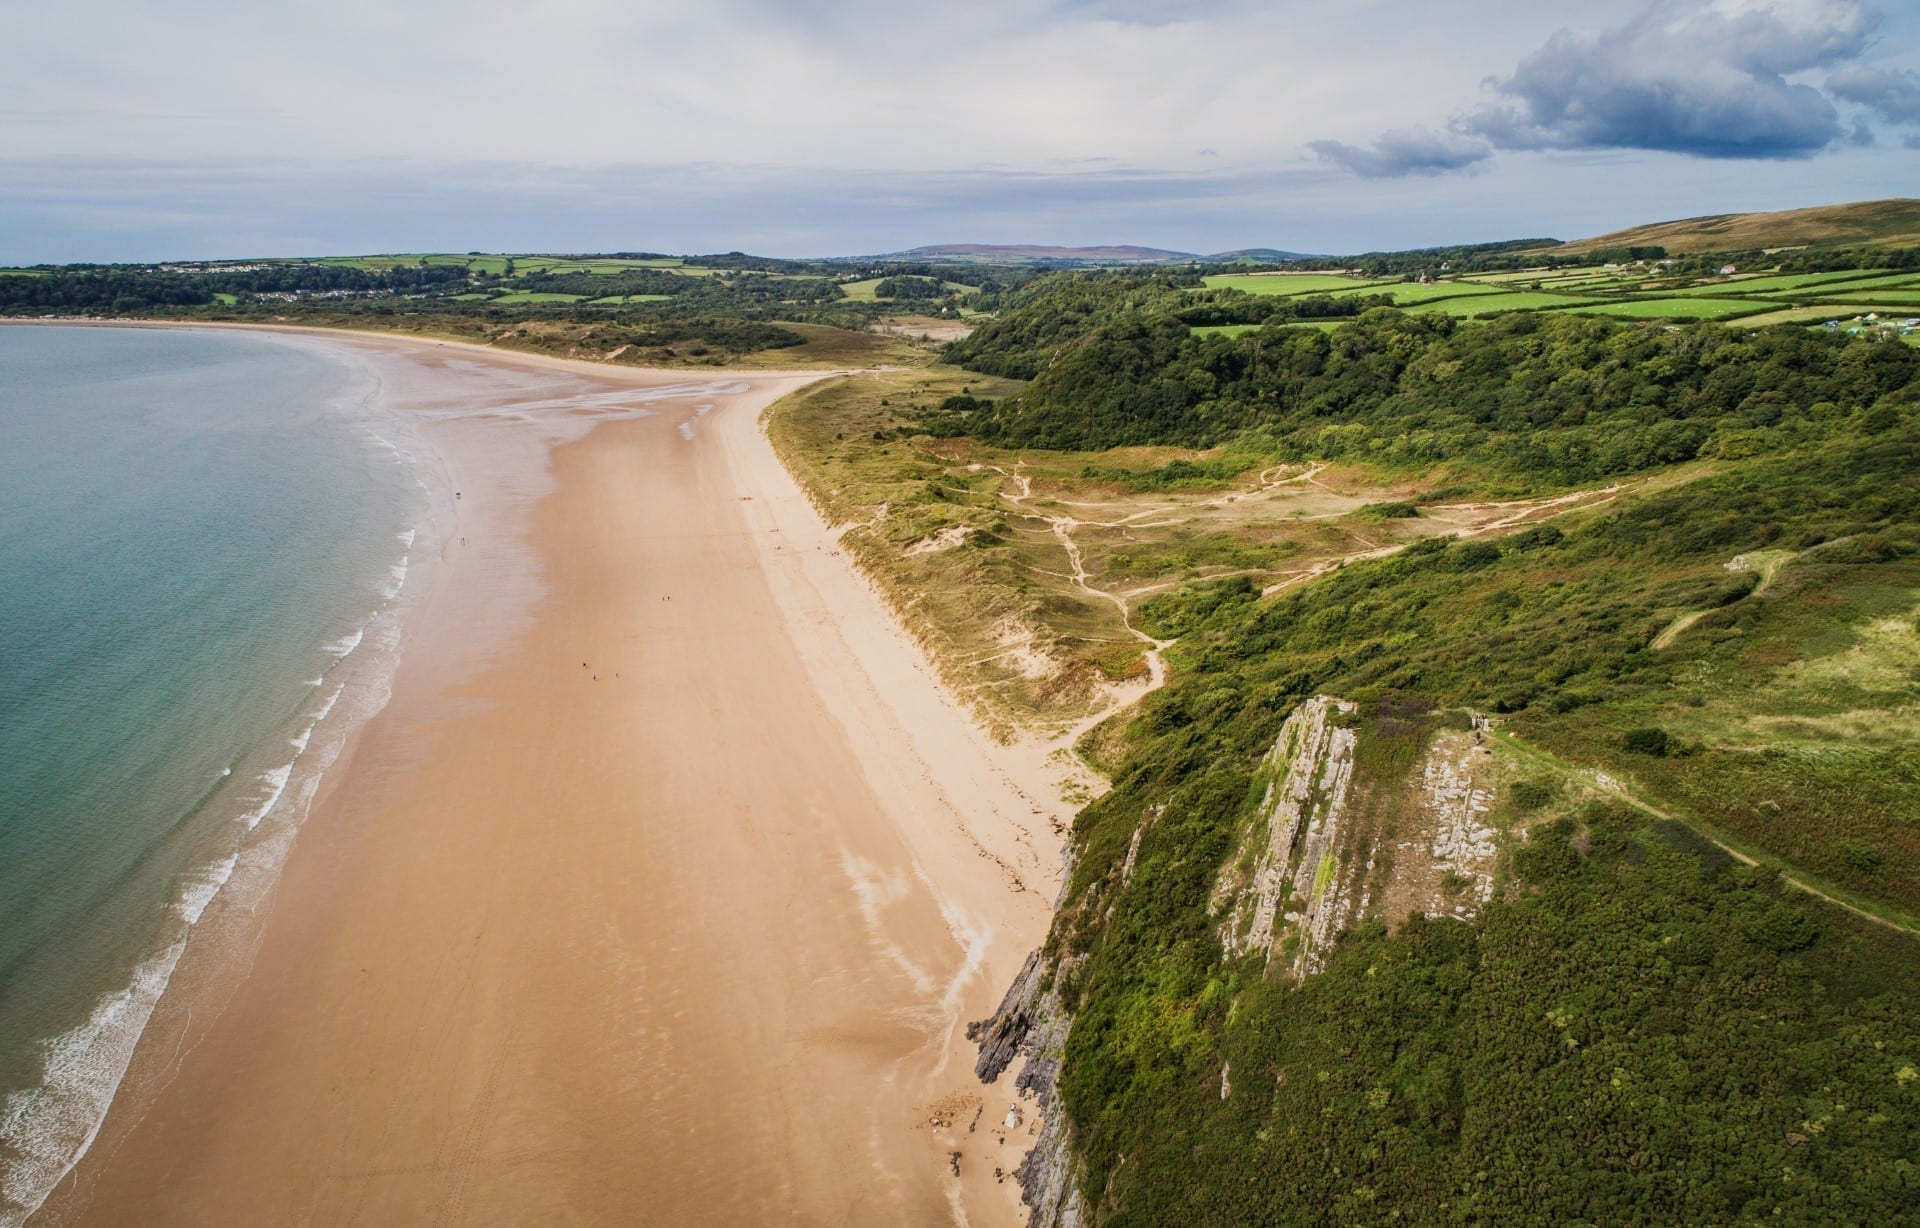 overhead view of a beach with cliffs to the right side in Wales